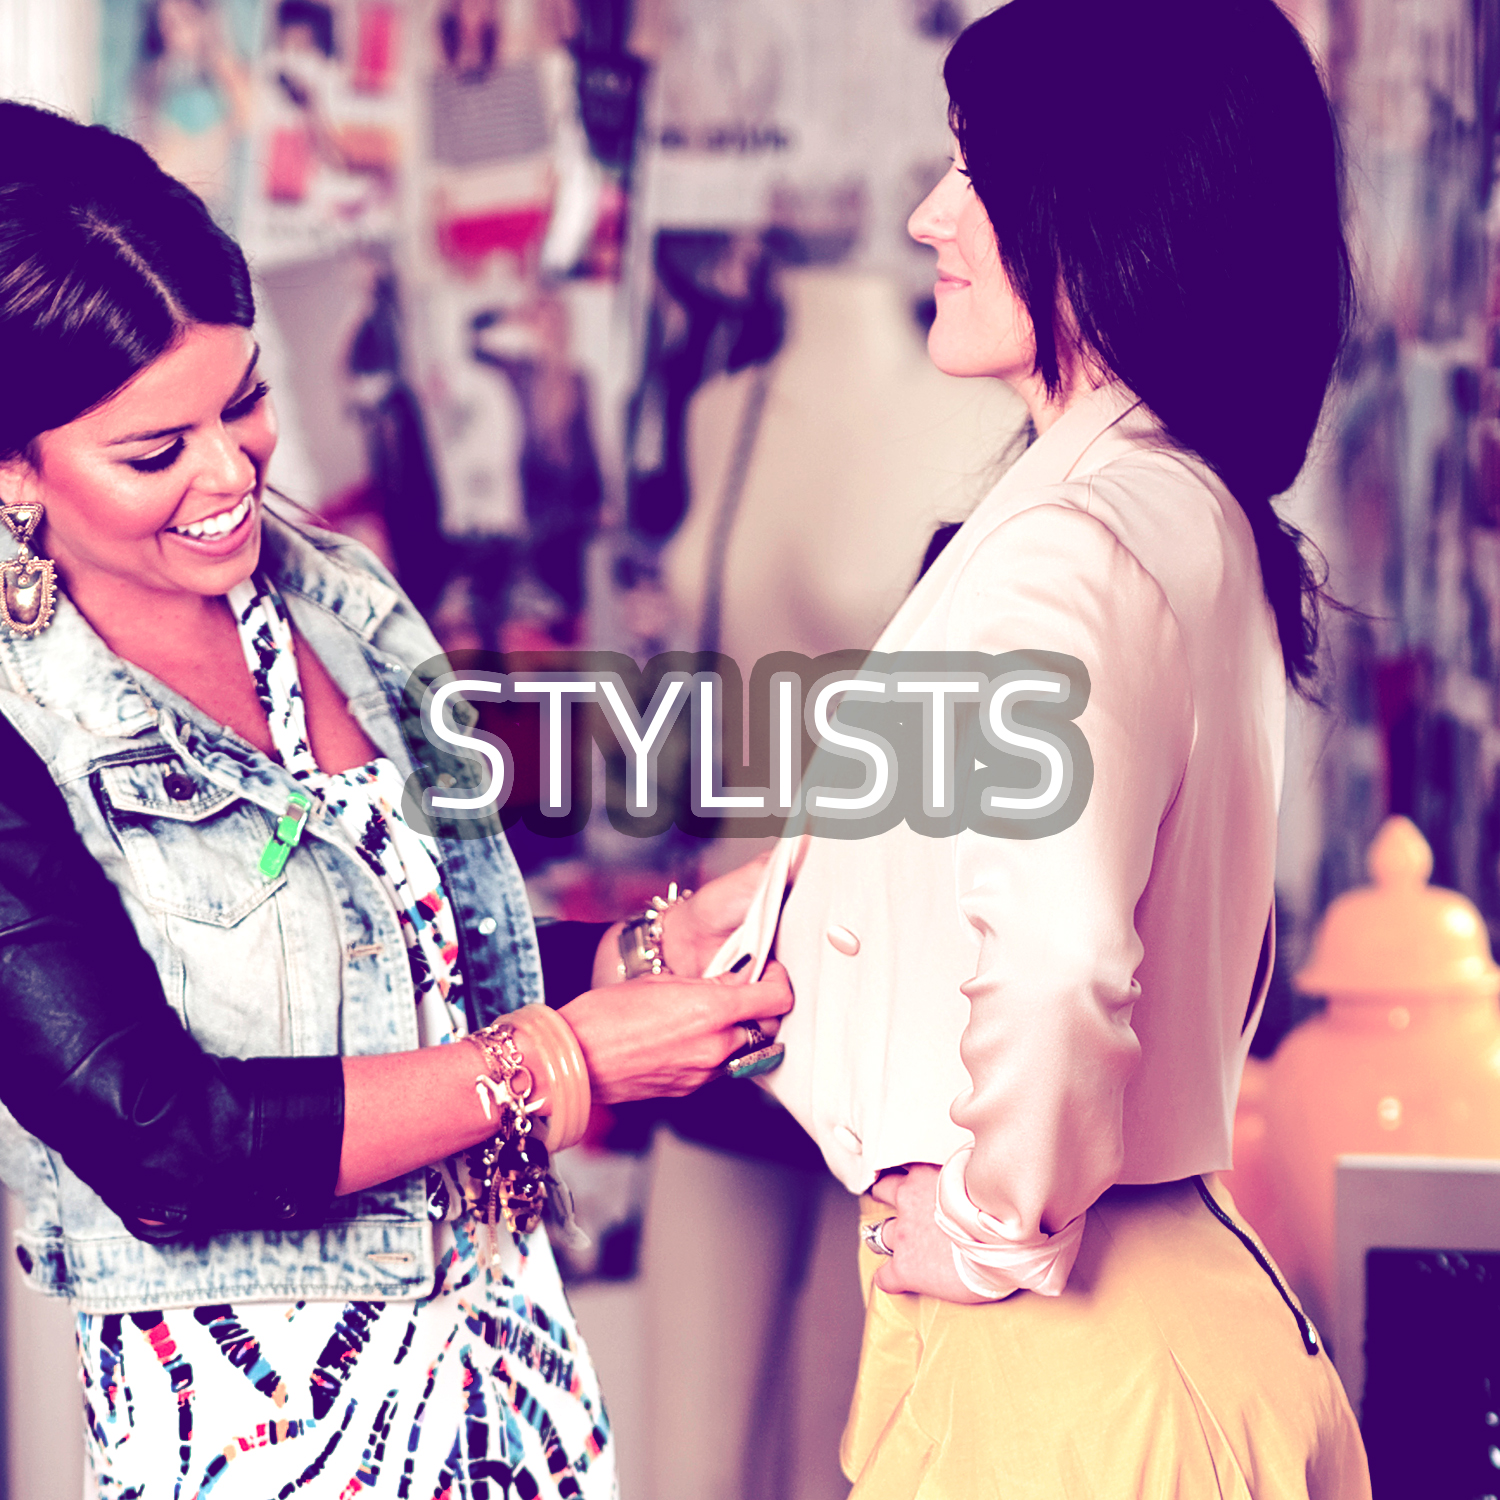 Stylists agency